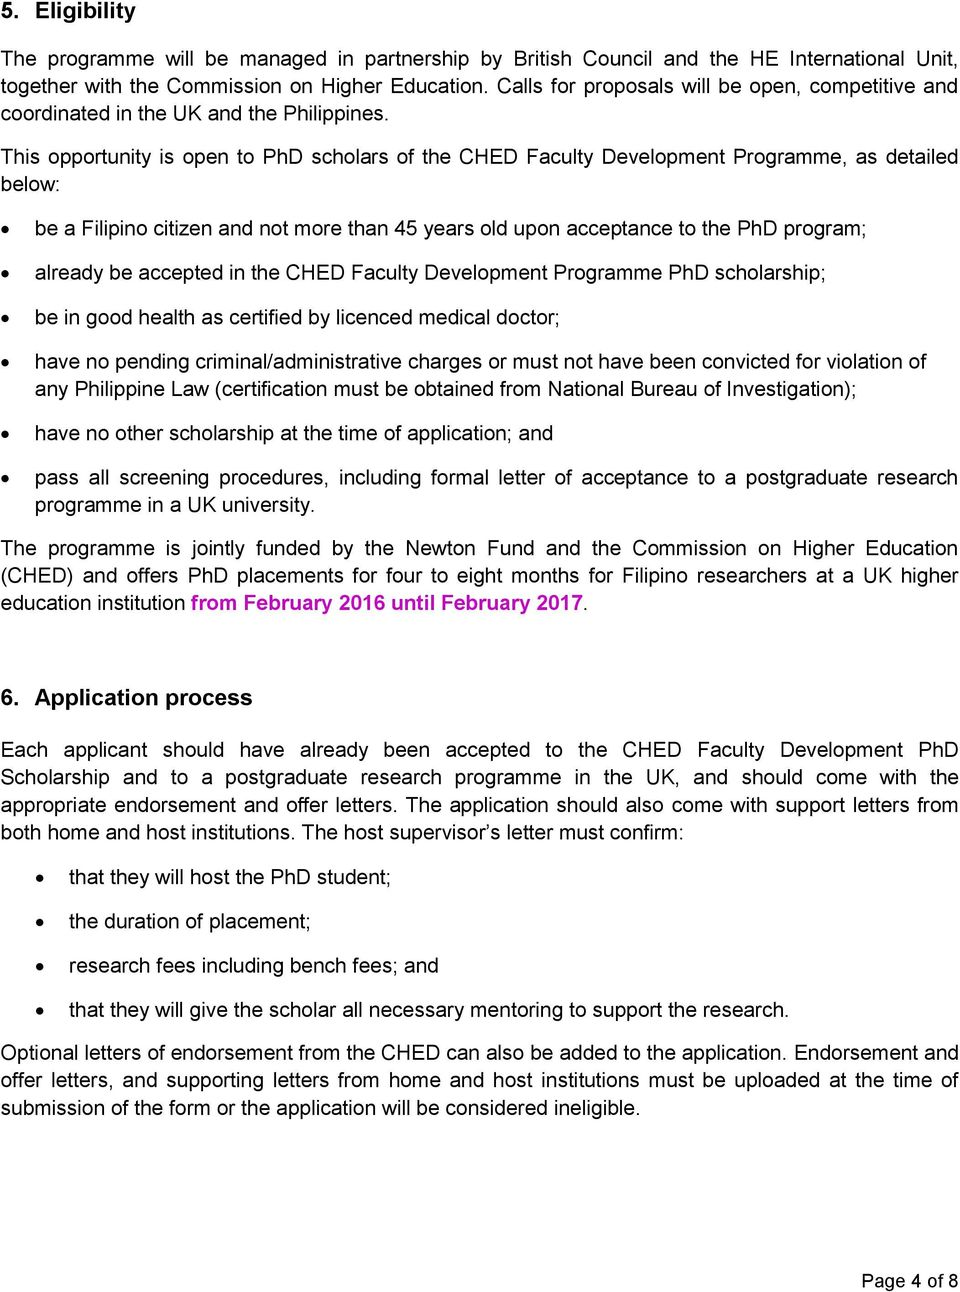 This opportunity is open to PhD scholars of the CHED Faculty Development Programme, as detailed below: be a Filipino citizen and not more than 45 years old upon acceptance to the PhD program; already